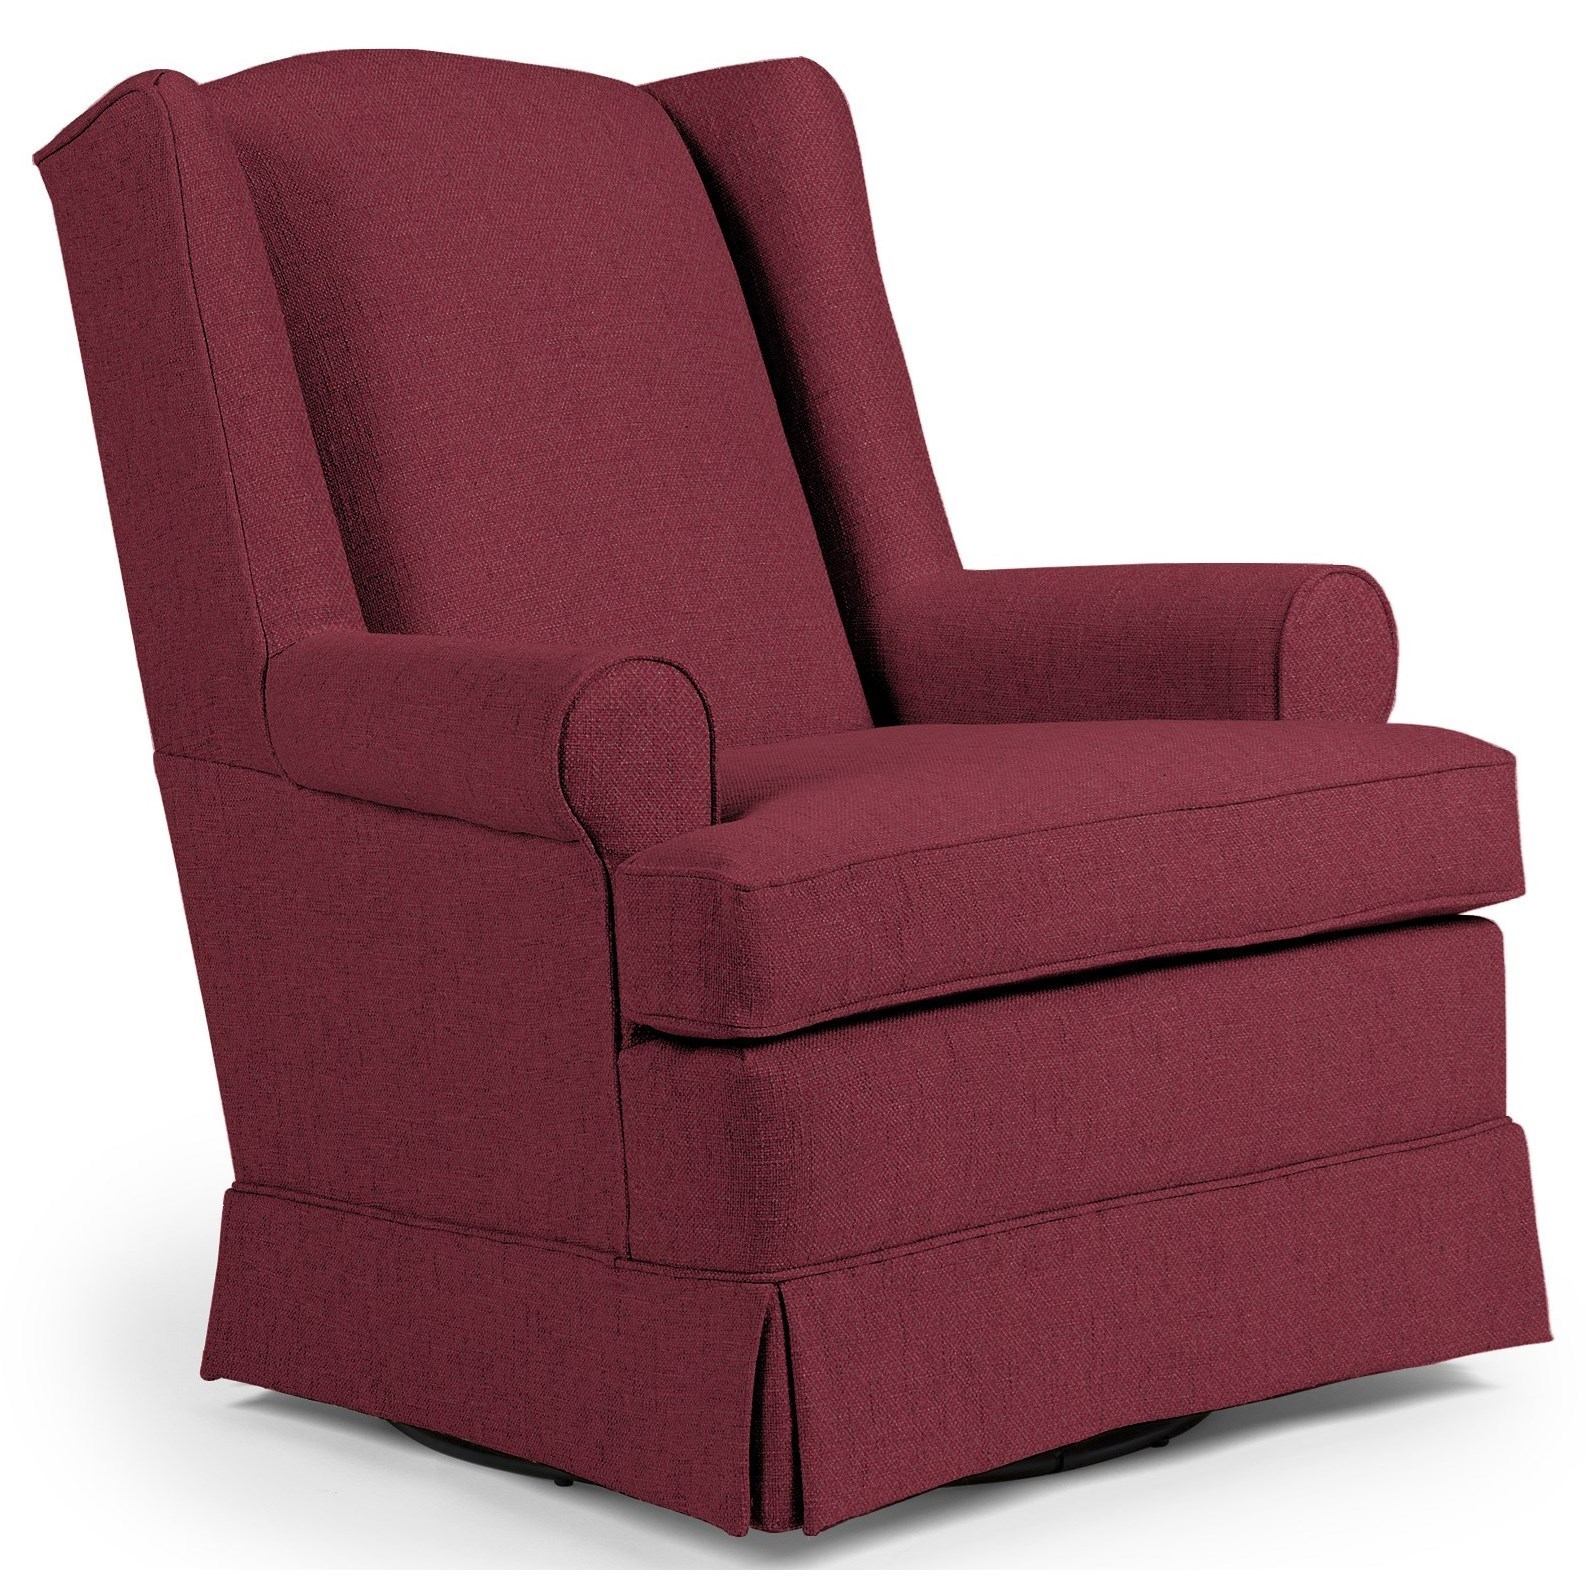 Best Home Furnishings Chairs - Swivel Glide Roni Swivel Glider Chair - Item Number: 7197-21928